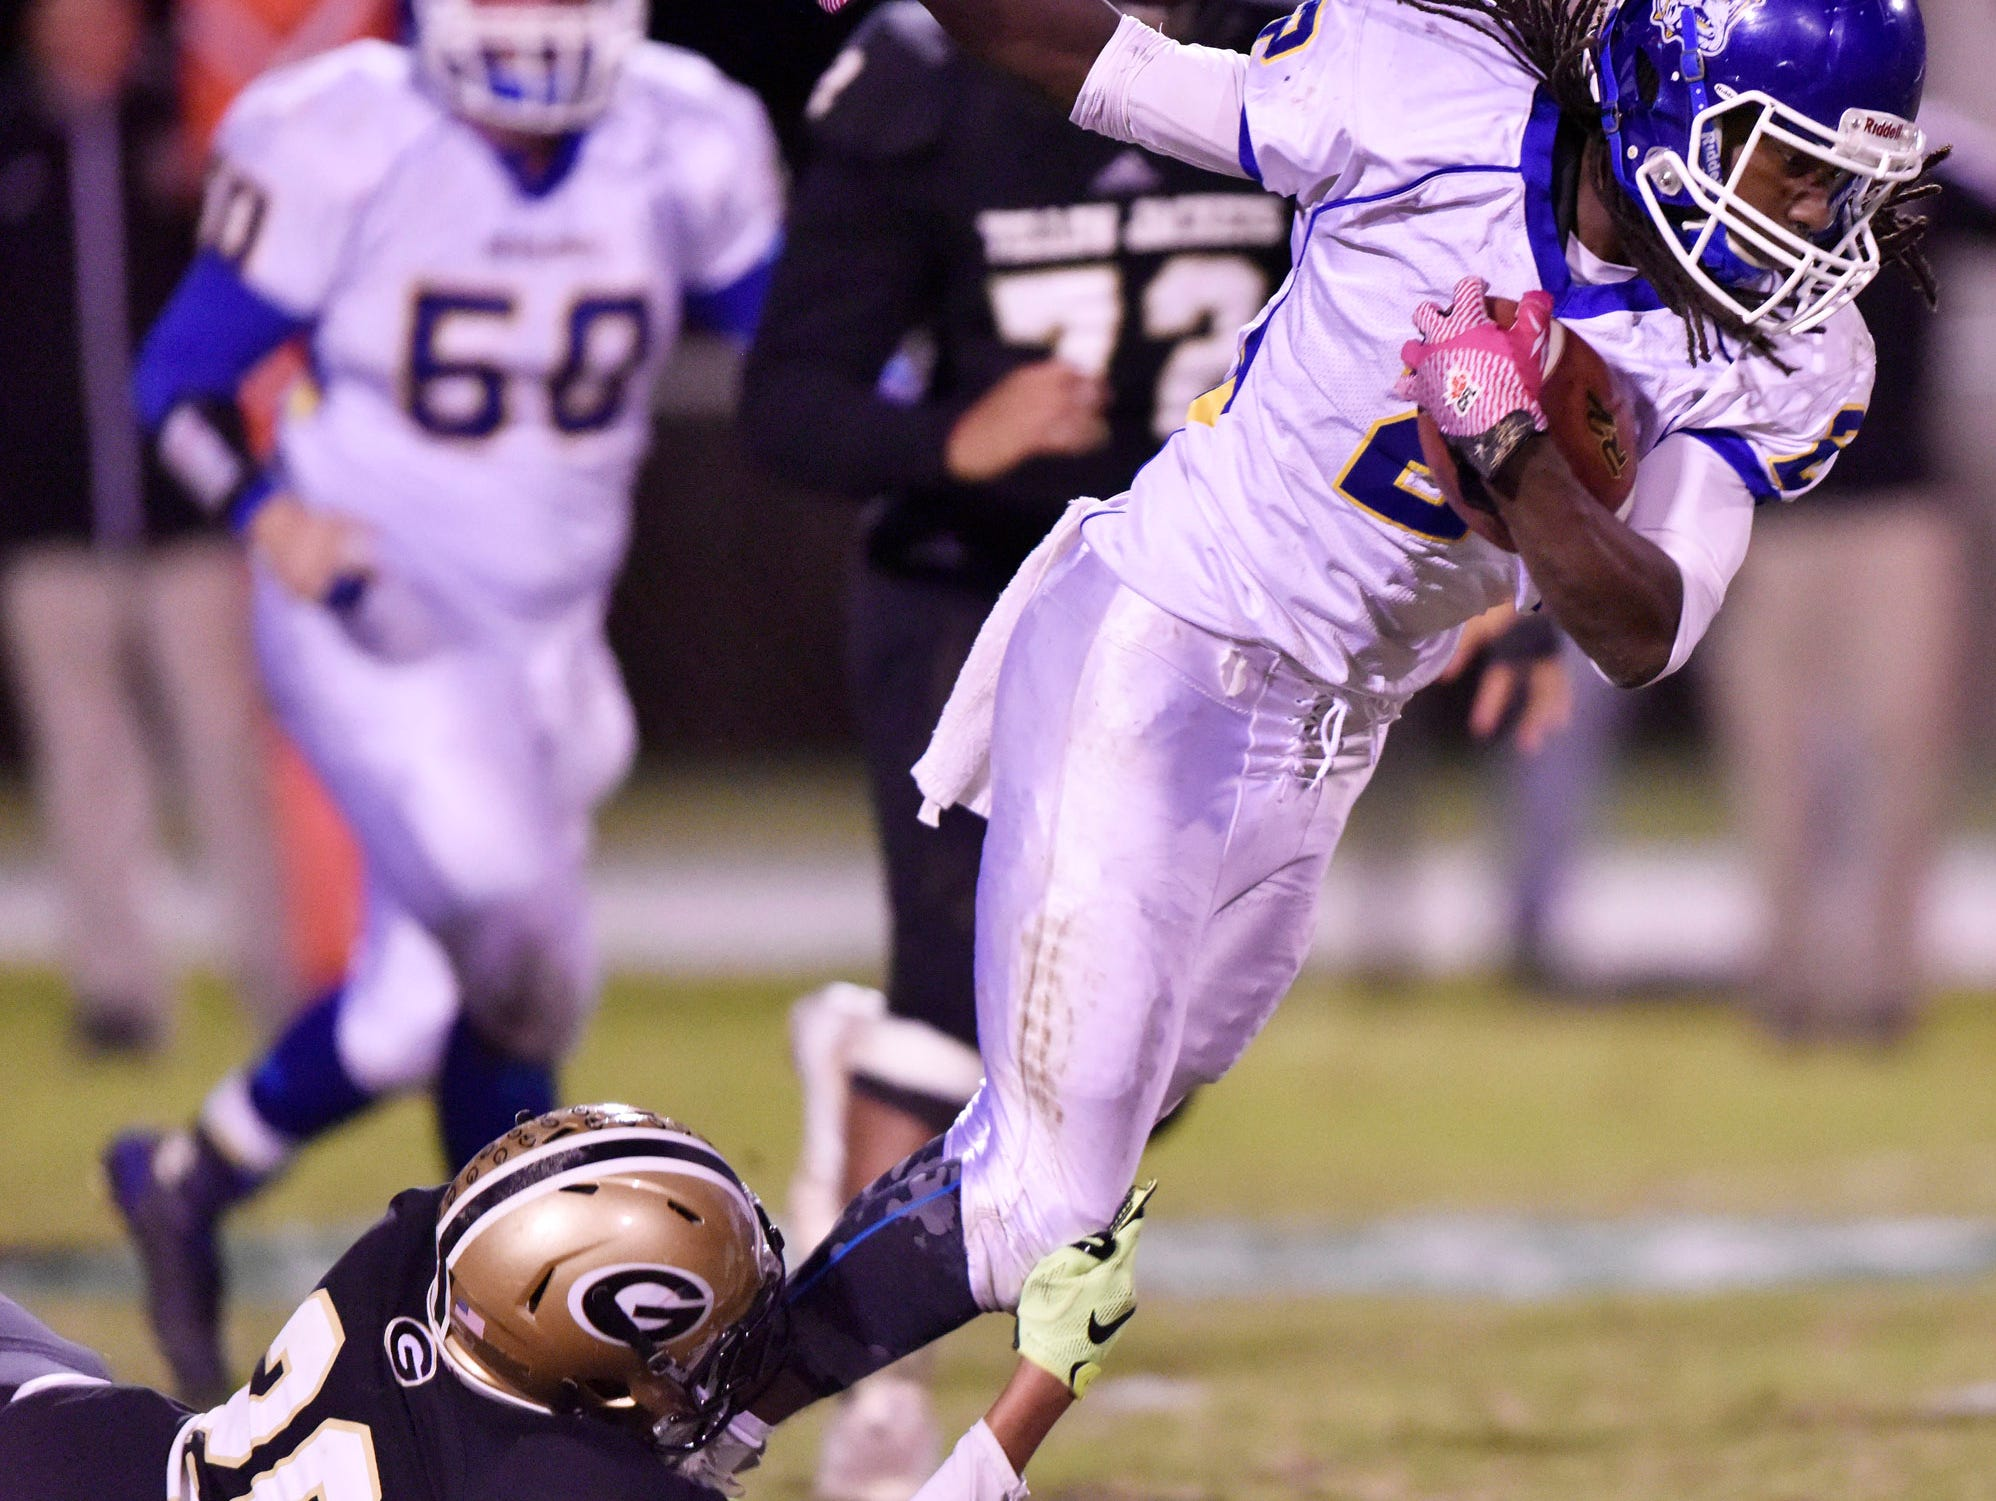 Travelers Rest's Xaiver Terry (2) is caught by Greer's D.J. Sitton (20).